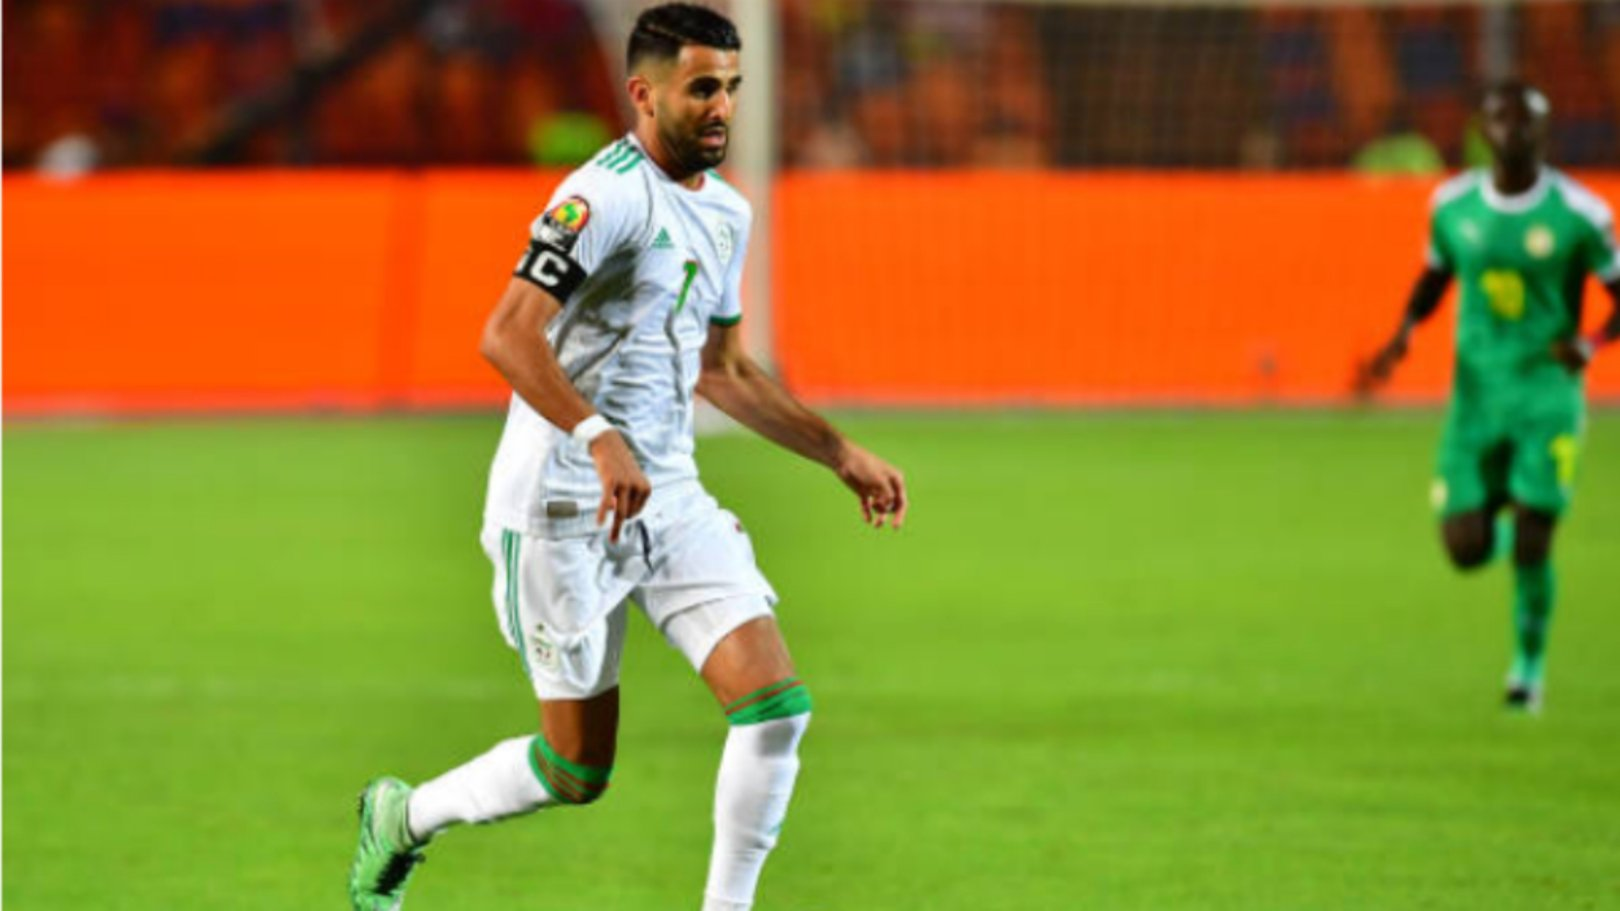 CHAMPION: Riyad Mahrez lifted the African Cup of Nations with Algeria.